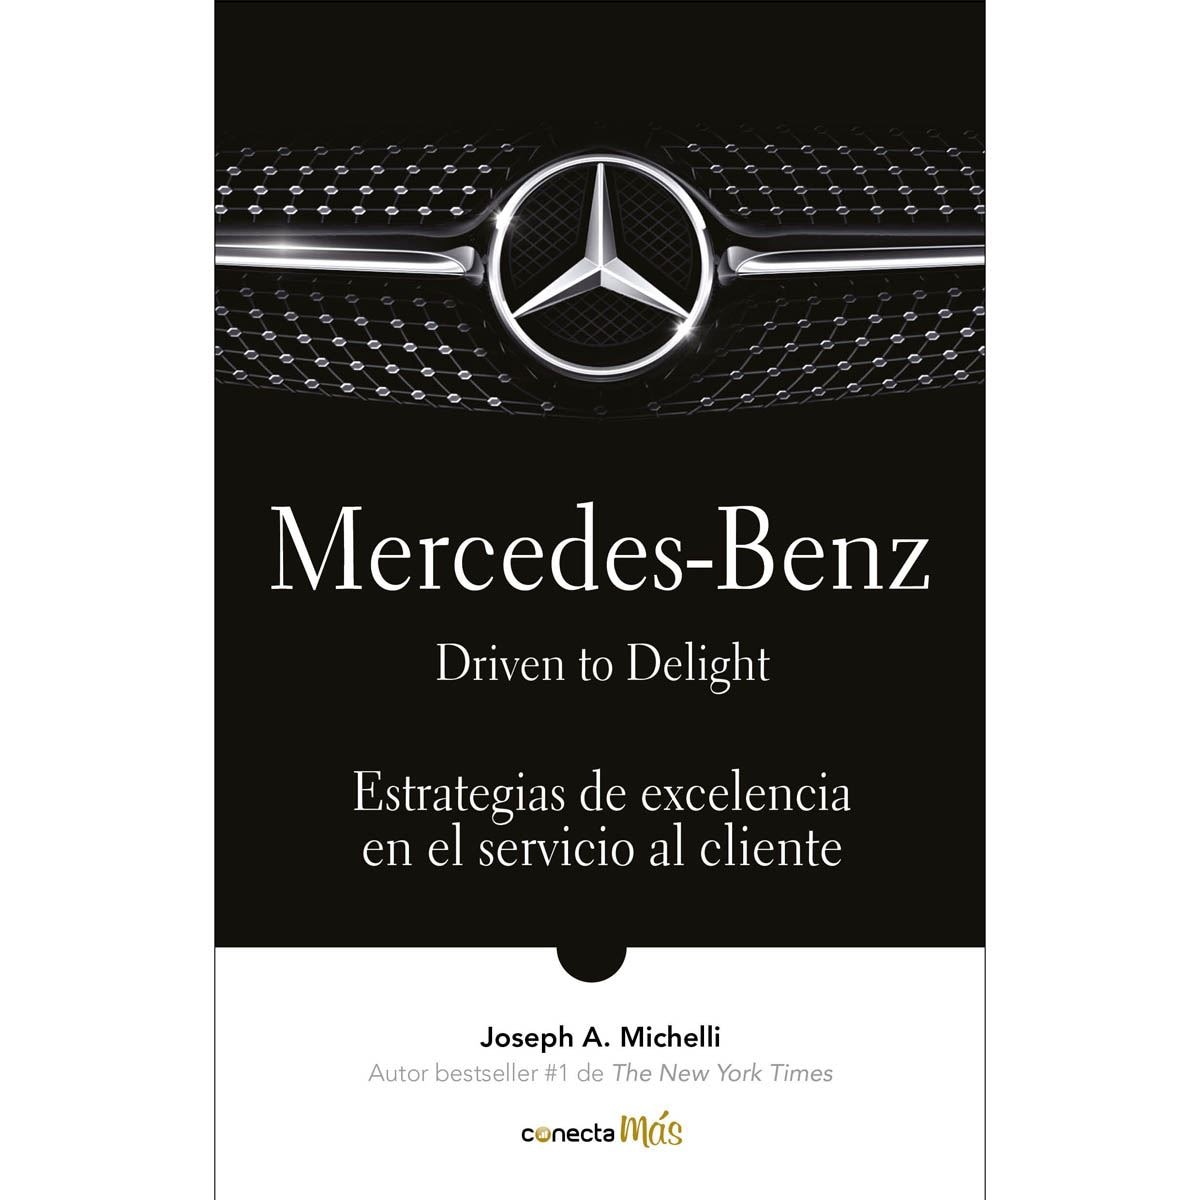 Mercedez-Benz . Driven to delight